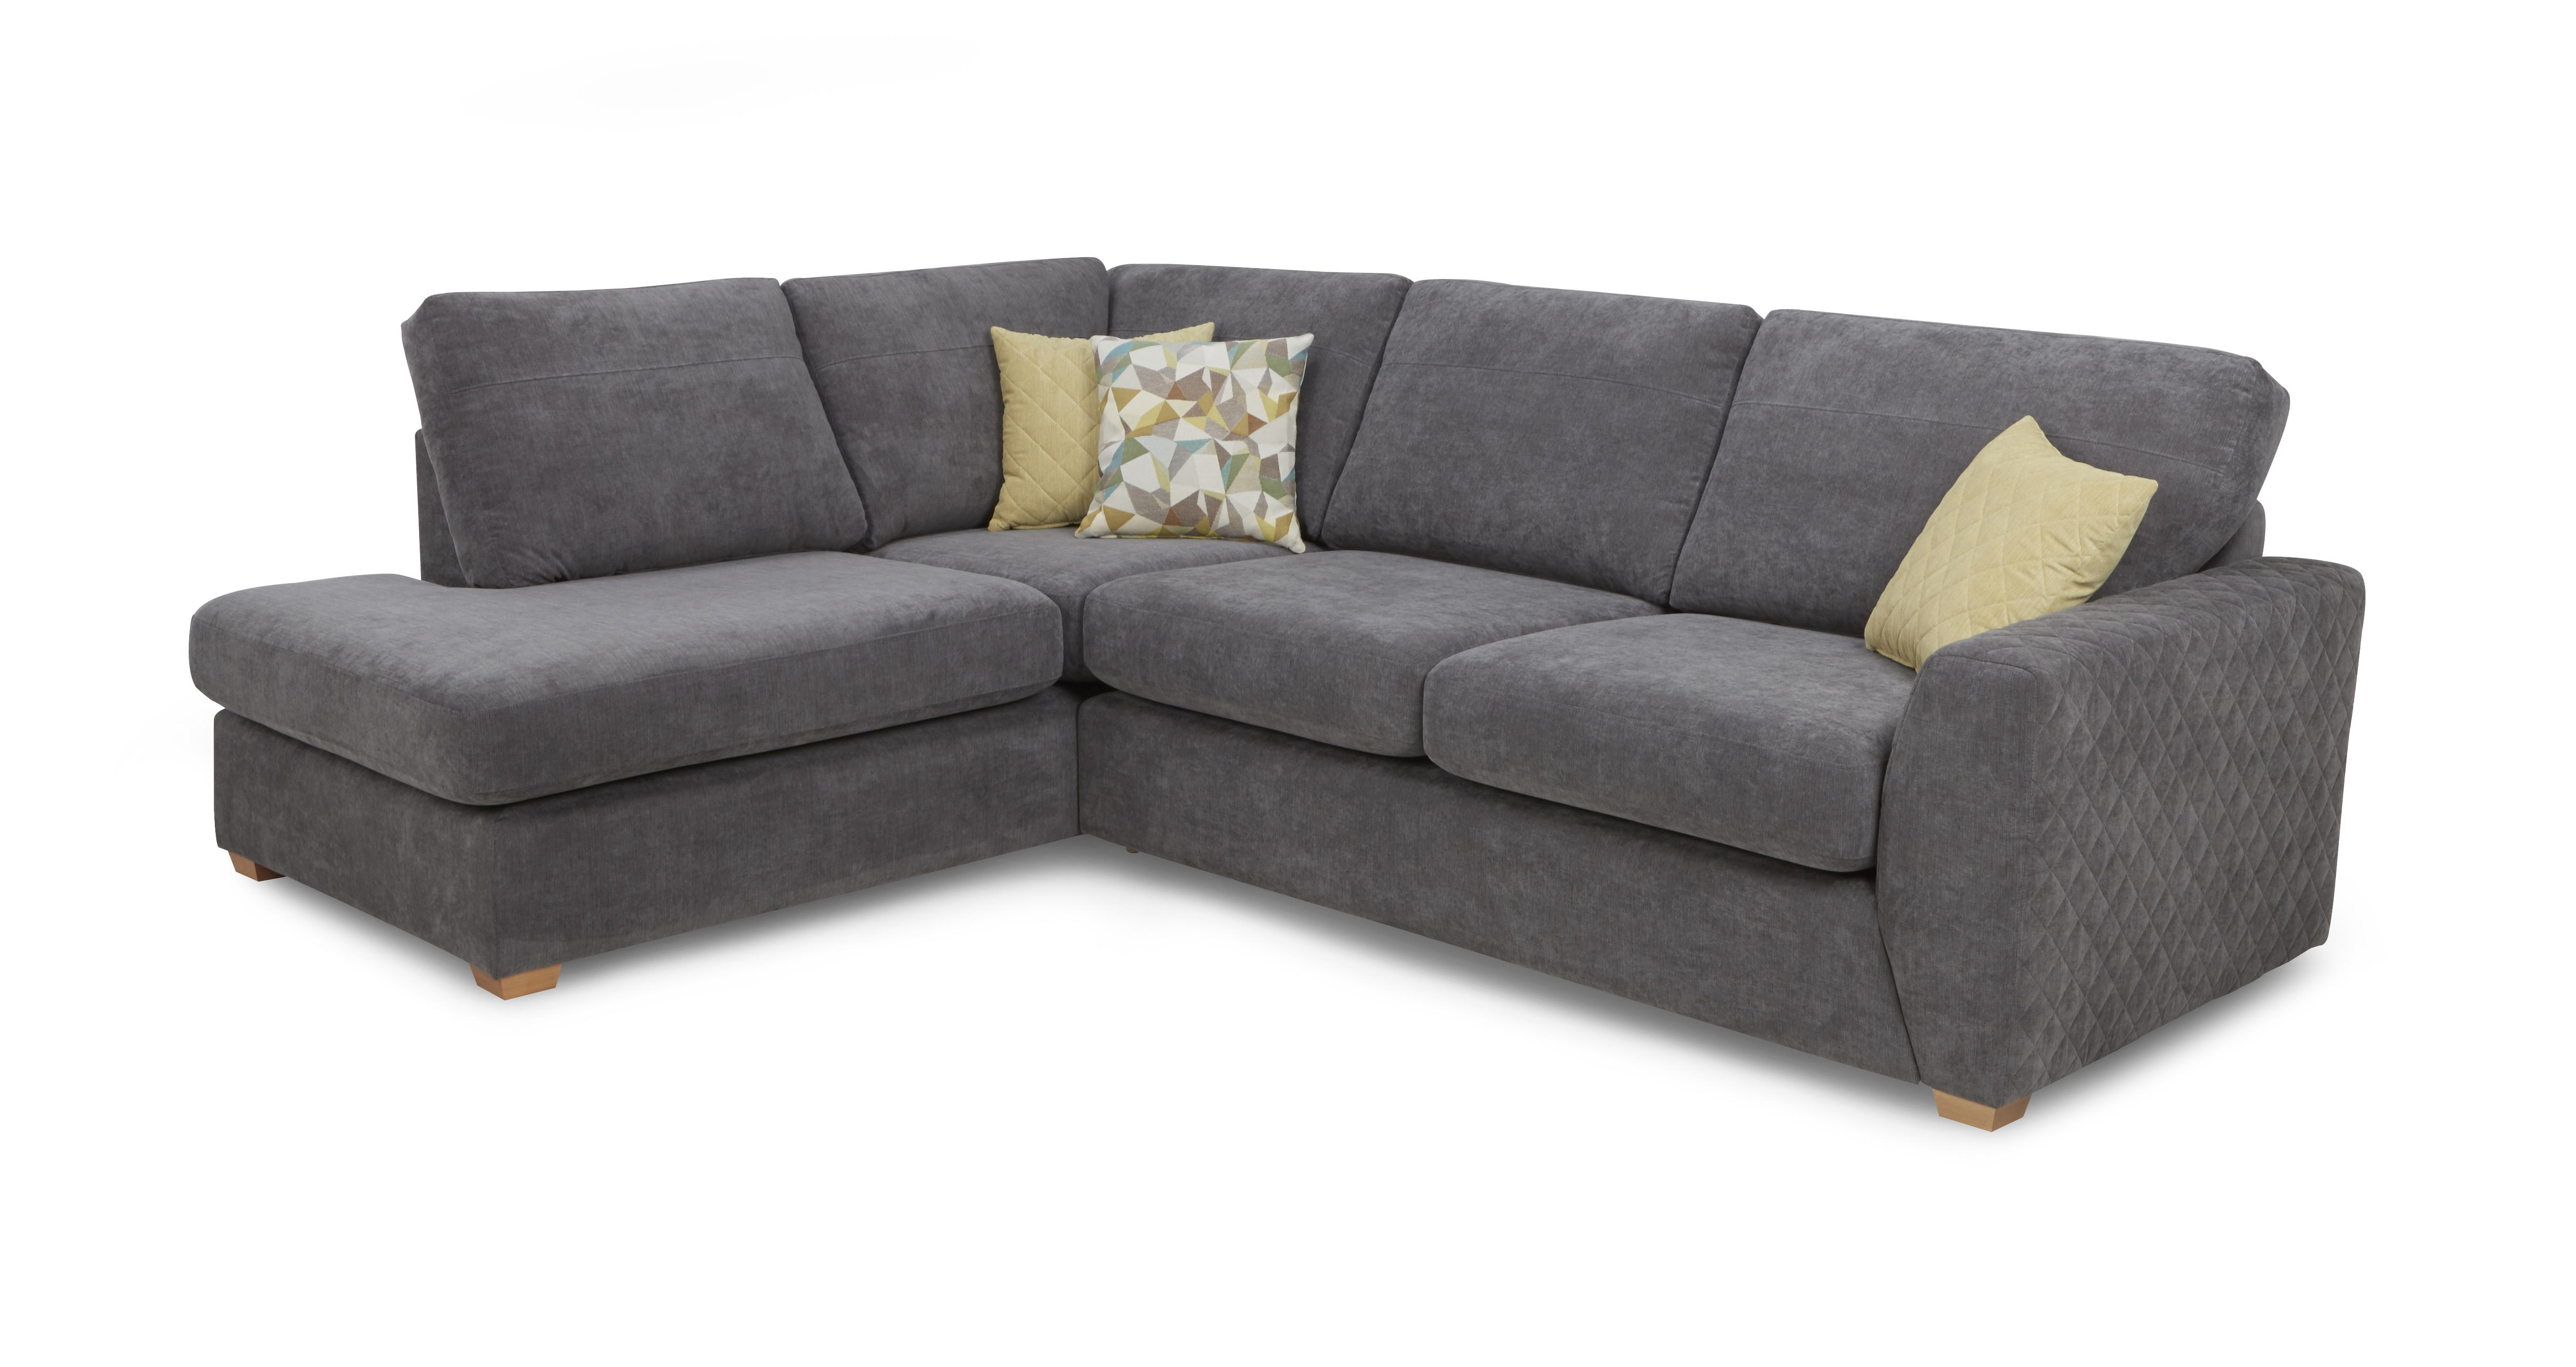 Astaire right hand facing arm open end corner sofa sherbet dfs 36 0 parisarafo Image collections